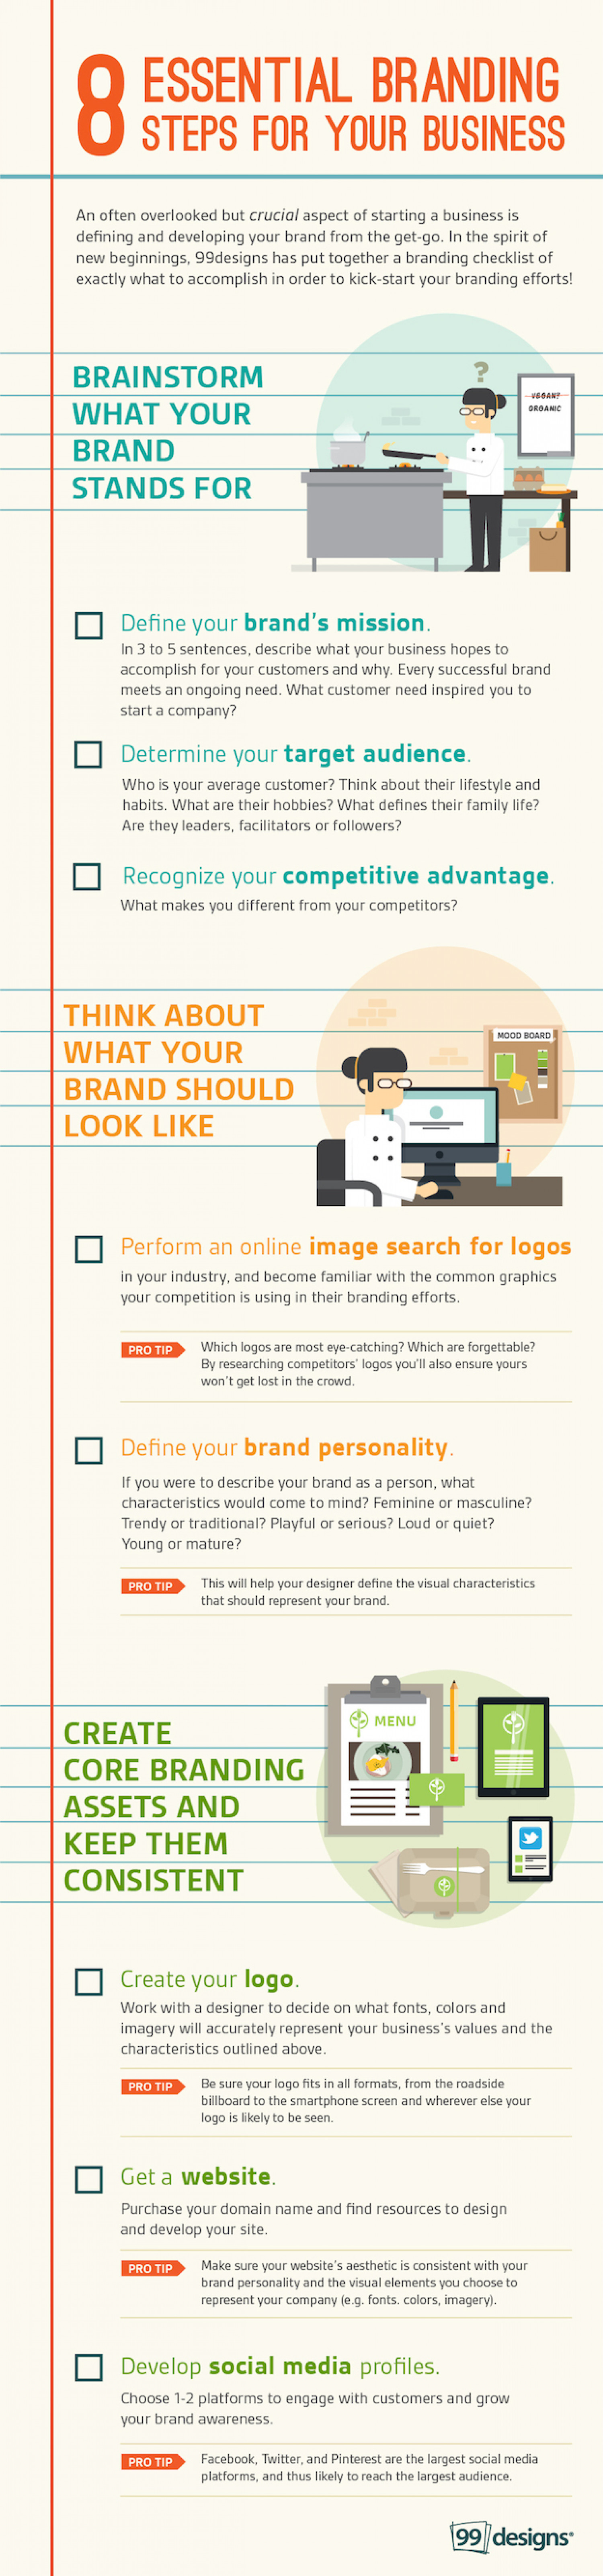 Small Business Branding Checklist Infographic